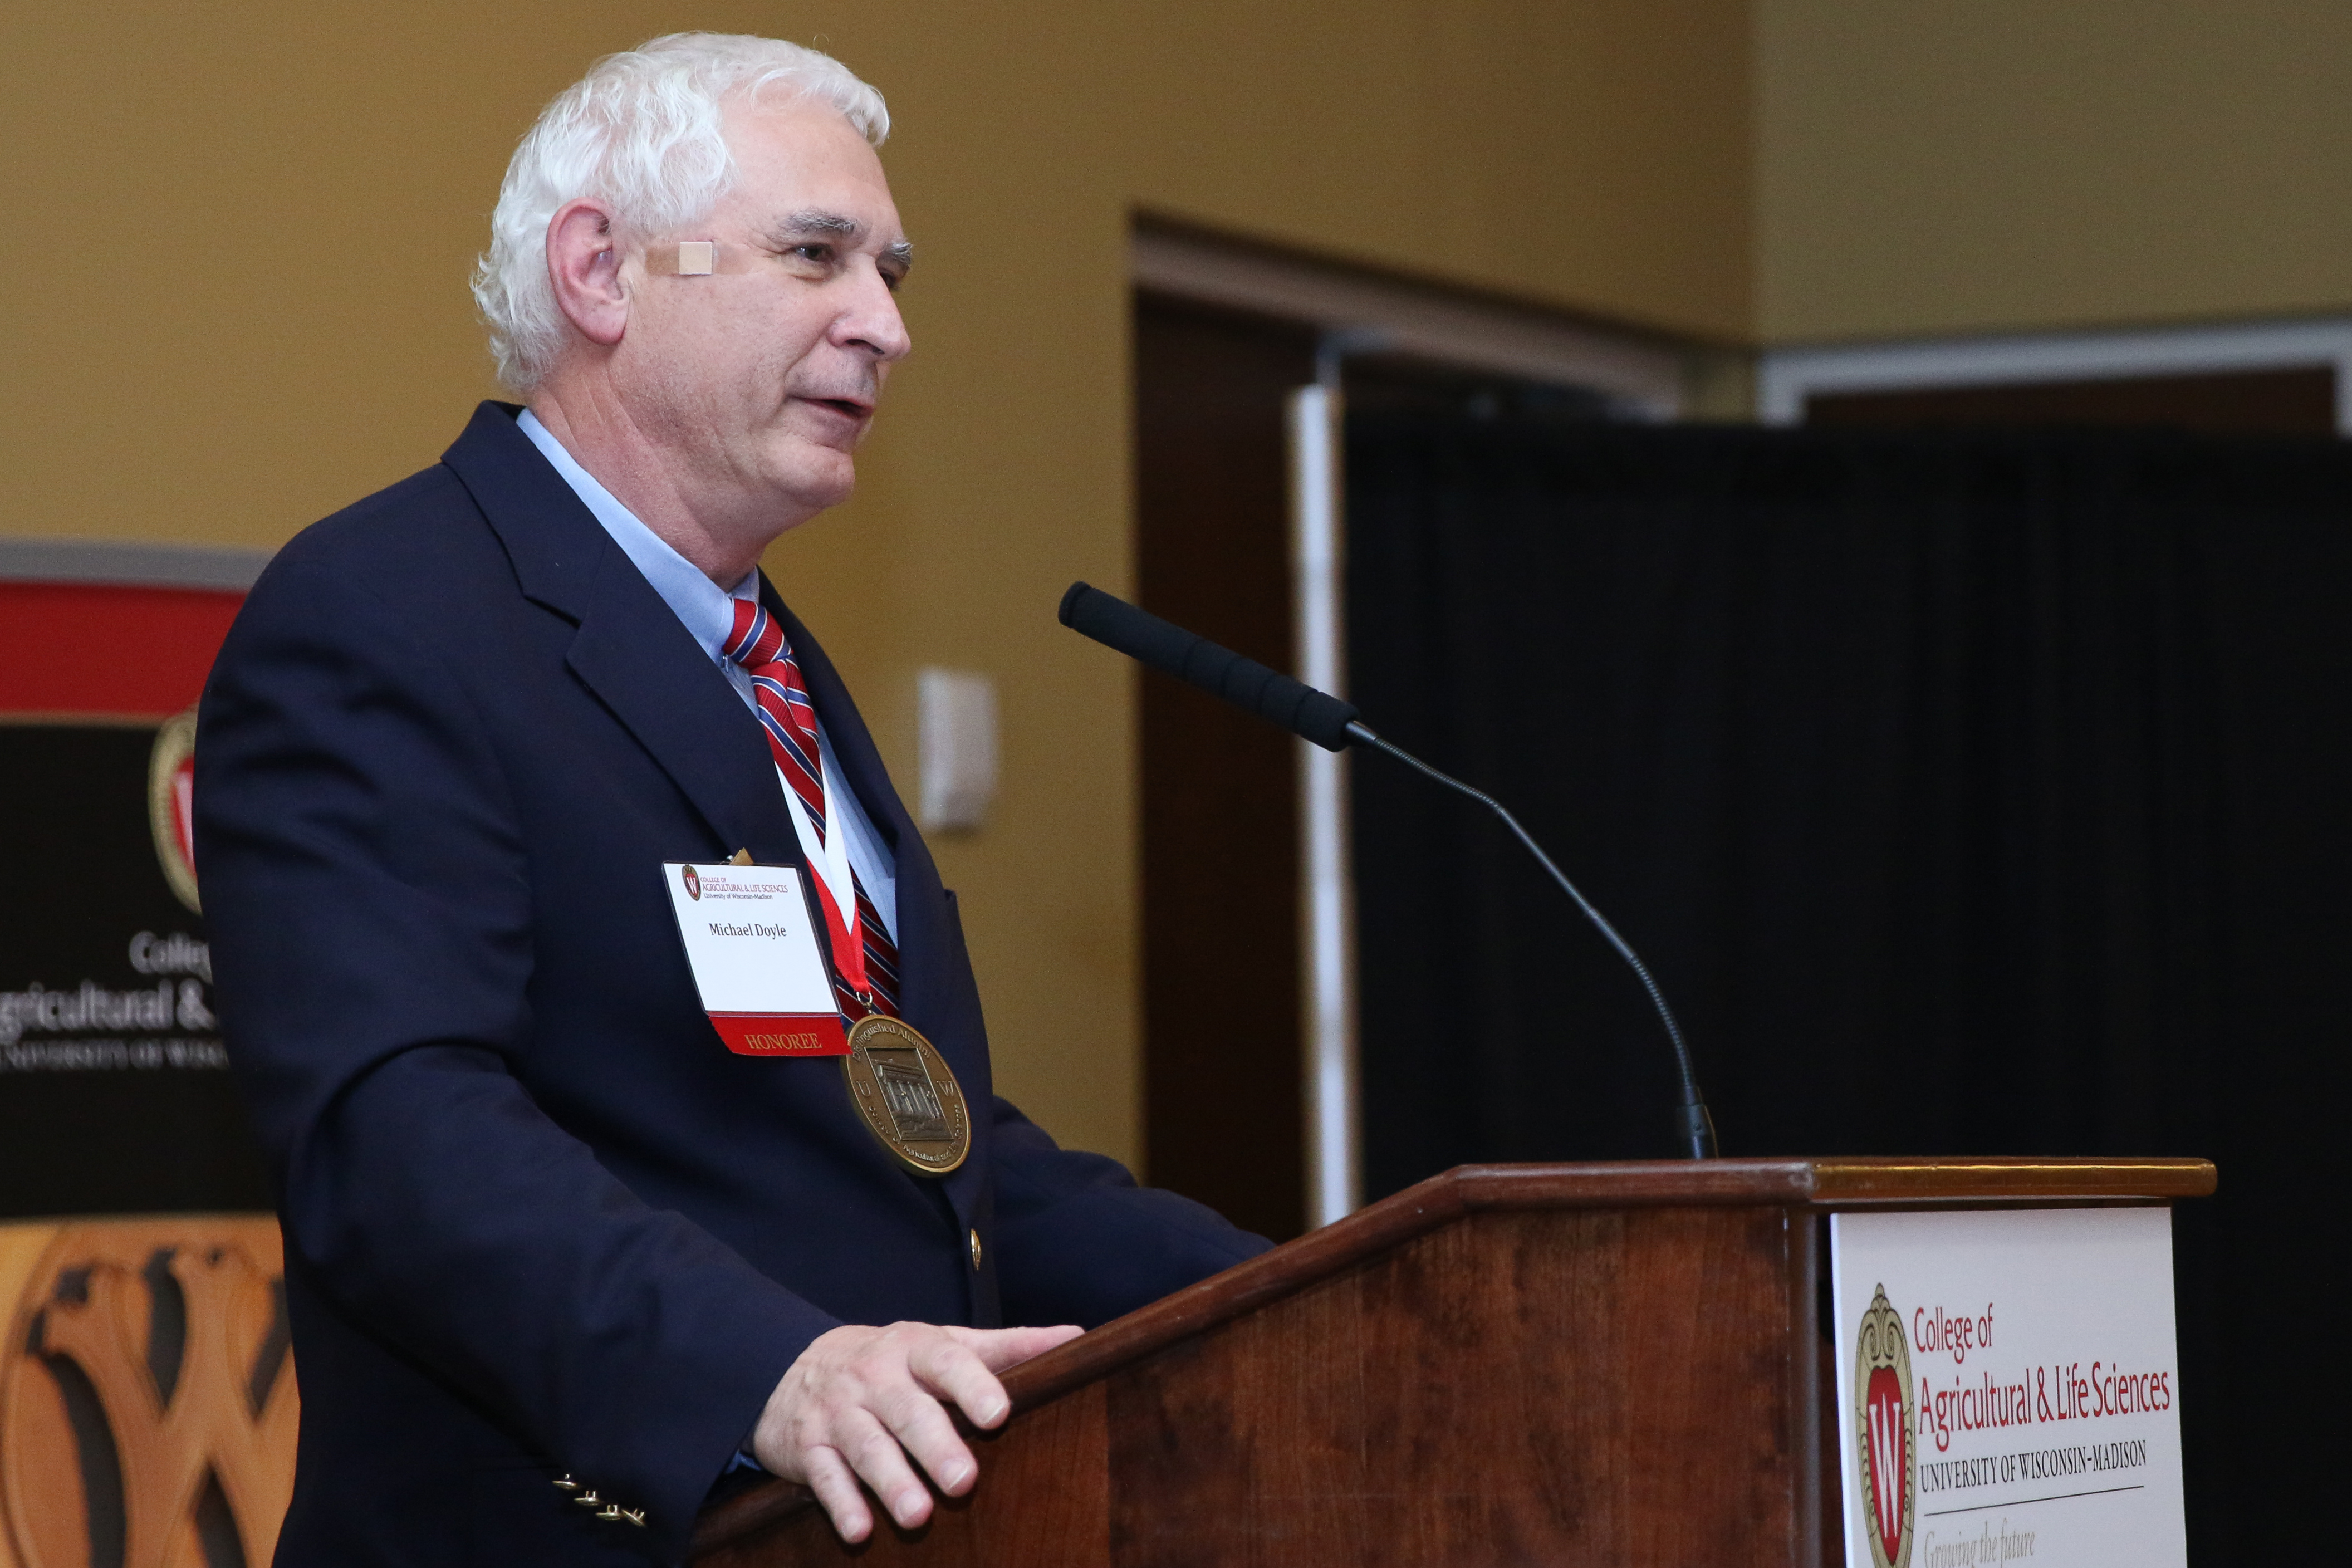 Mike Doyle receives 2015 CALS Distinguished Alumni Award